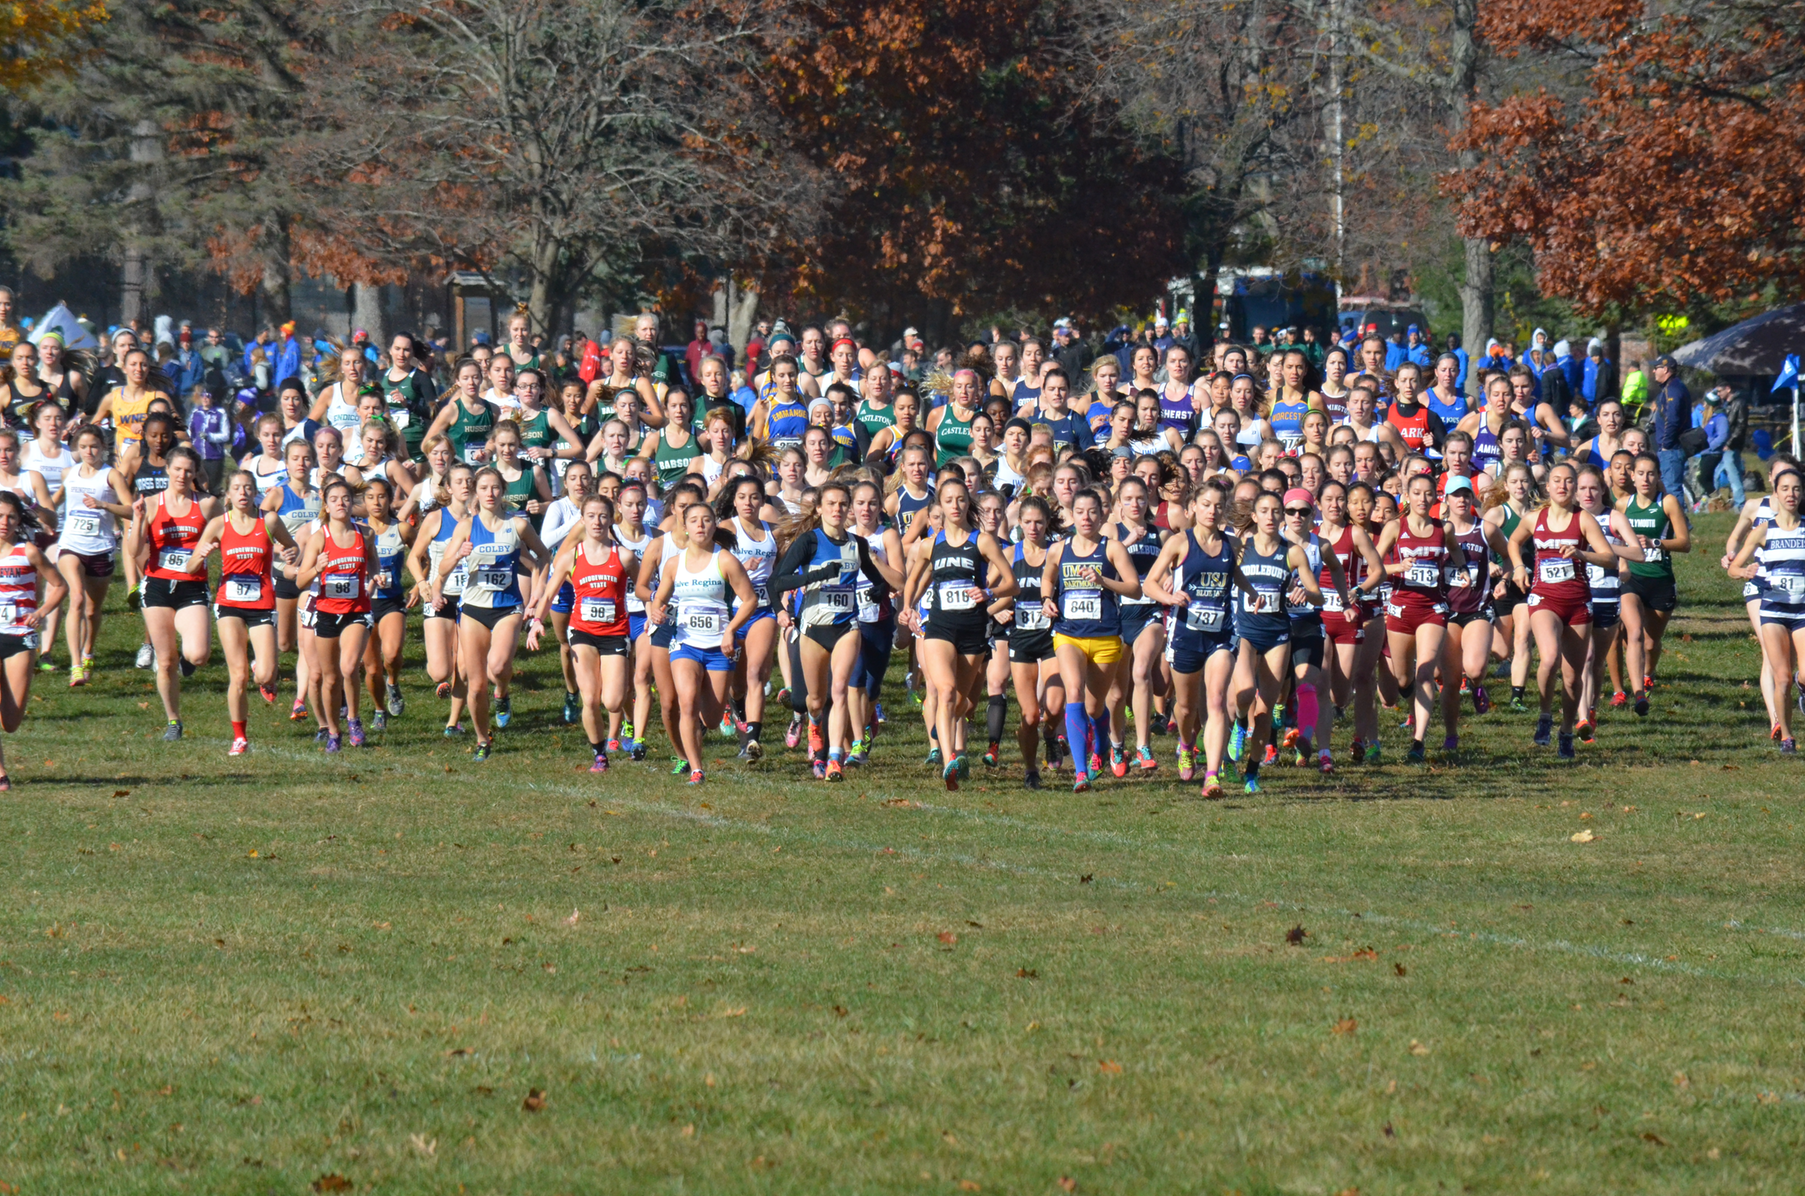 Women's Cross Country wraps up season at NCAA New England meet